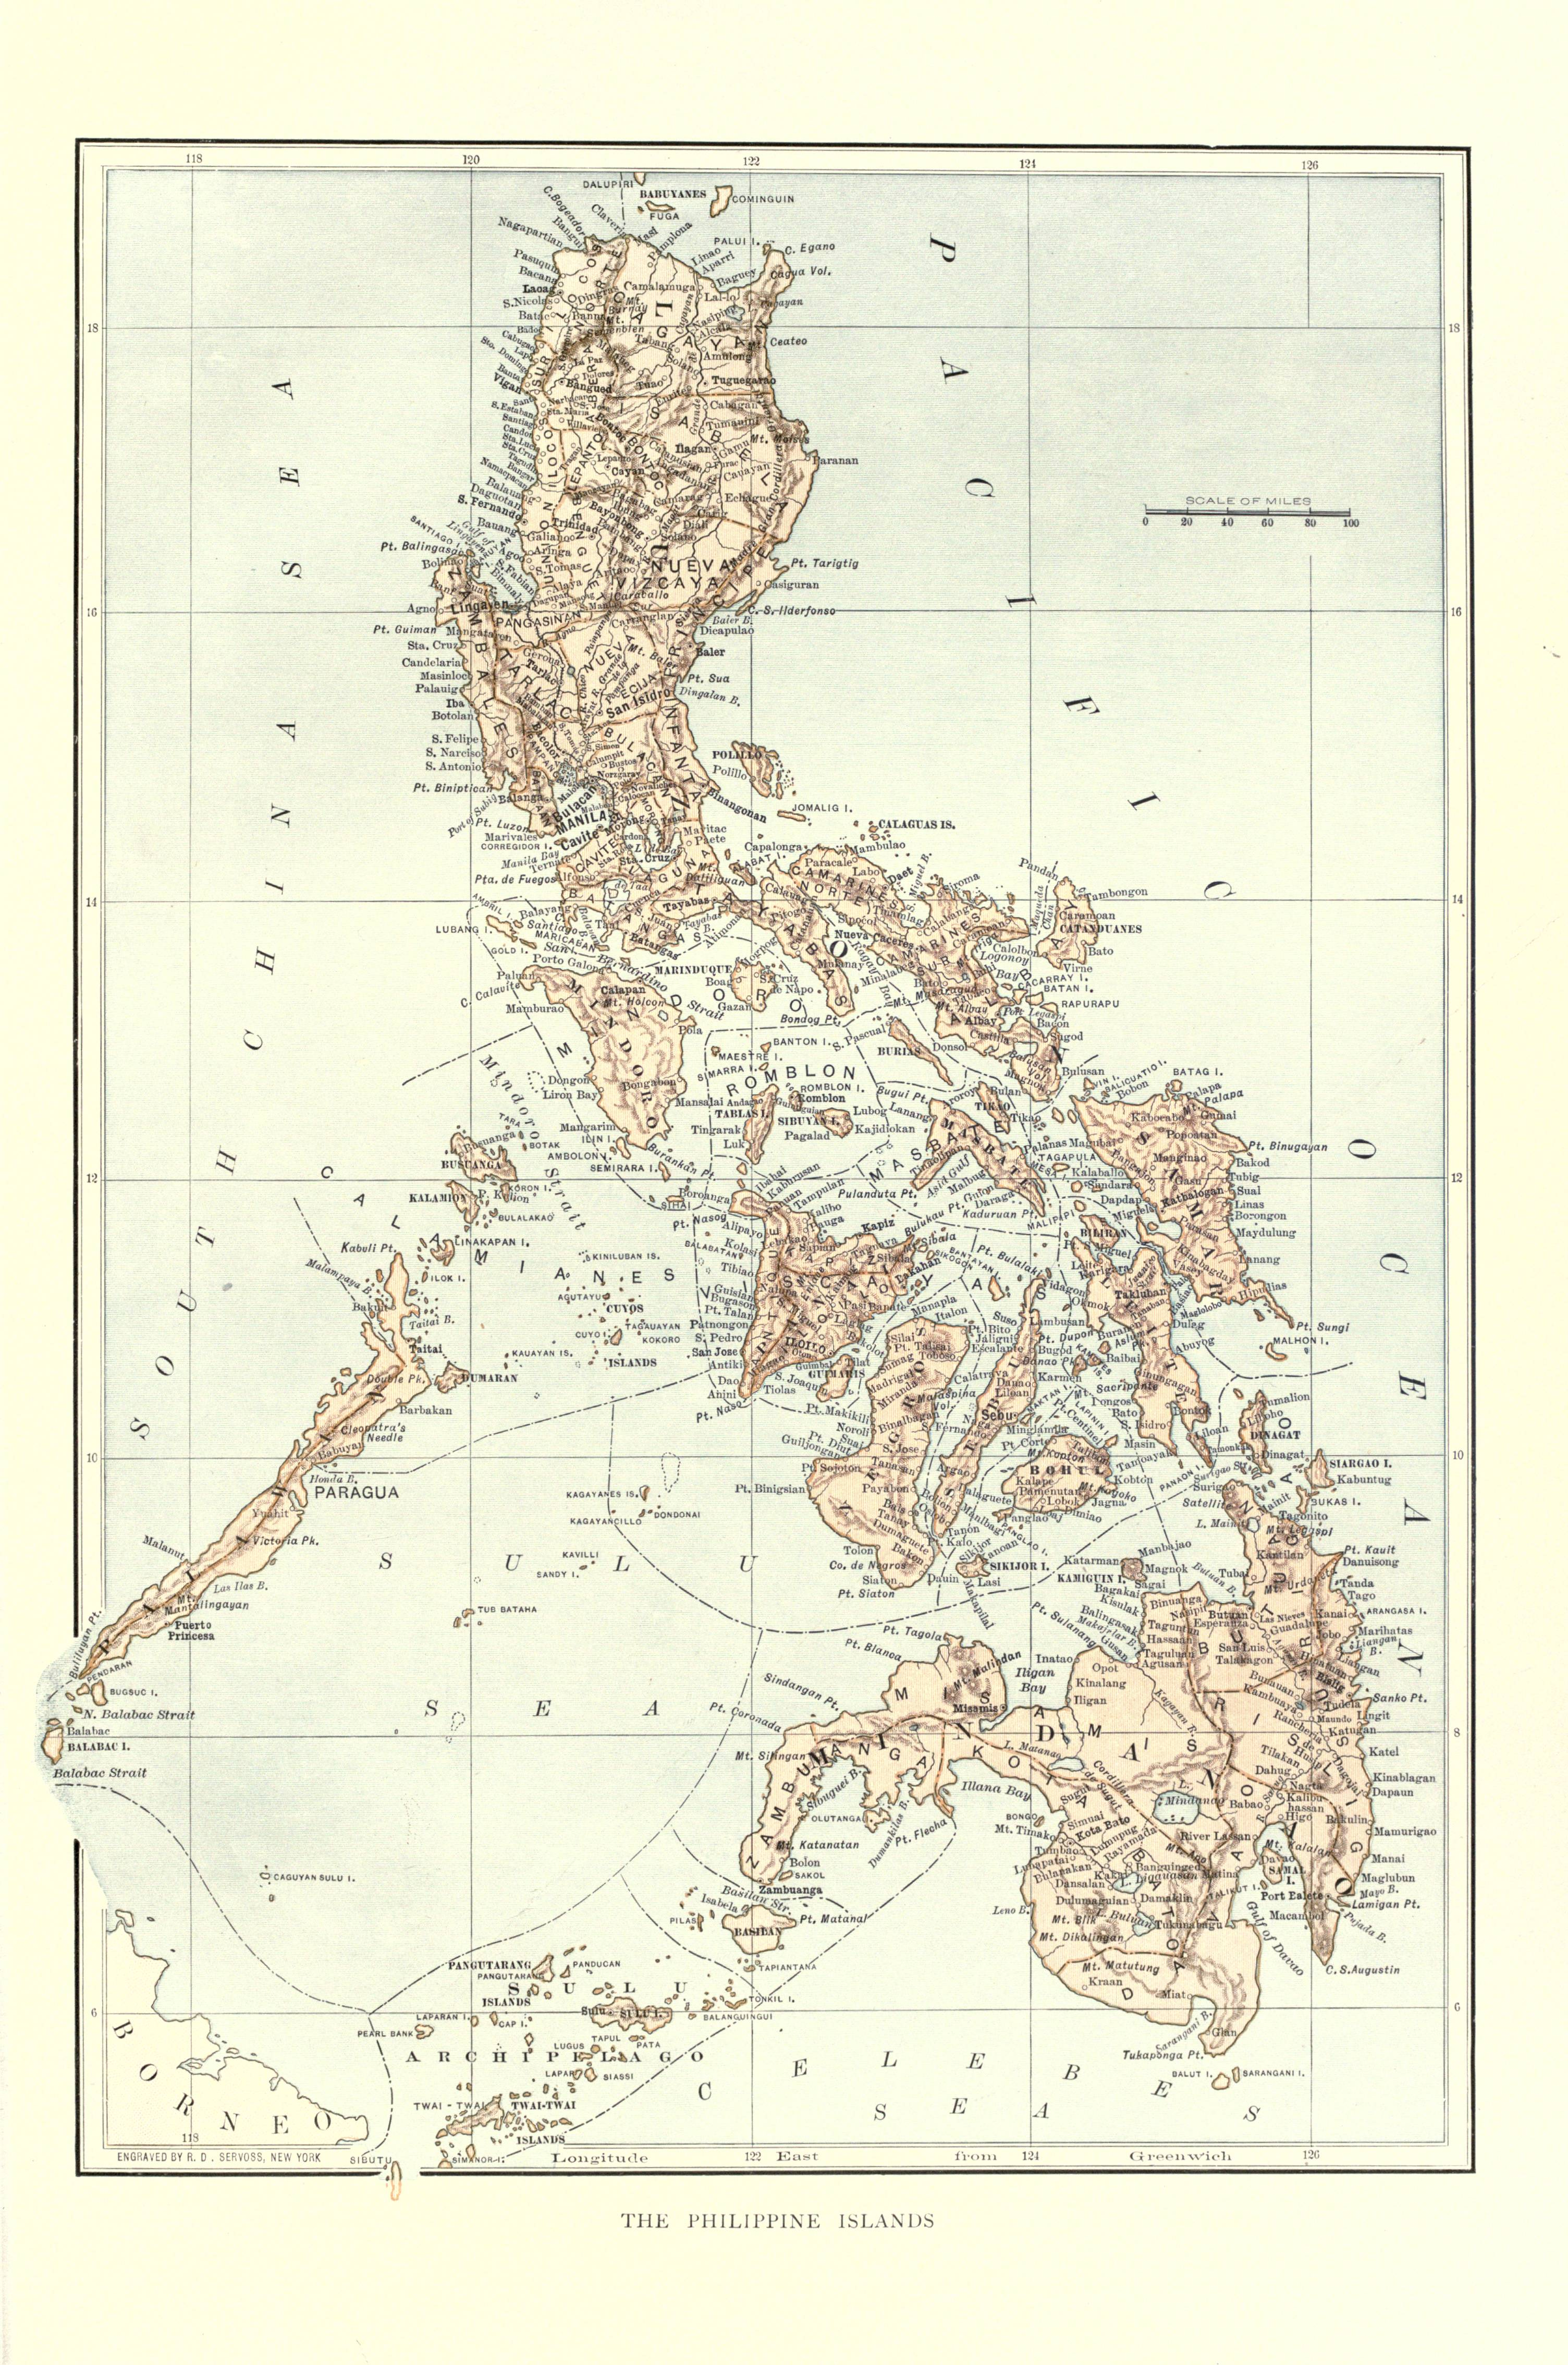 the history of philippine media Provides an overview of philippines, including key events and facts accessibility powerful commercial interests control or influence much of the media.